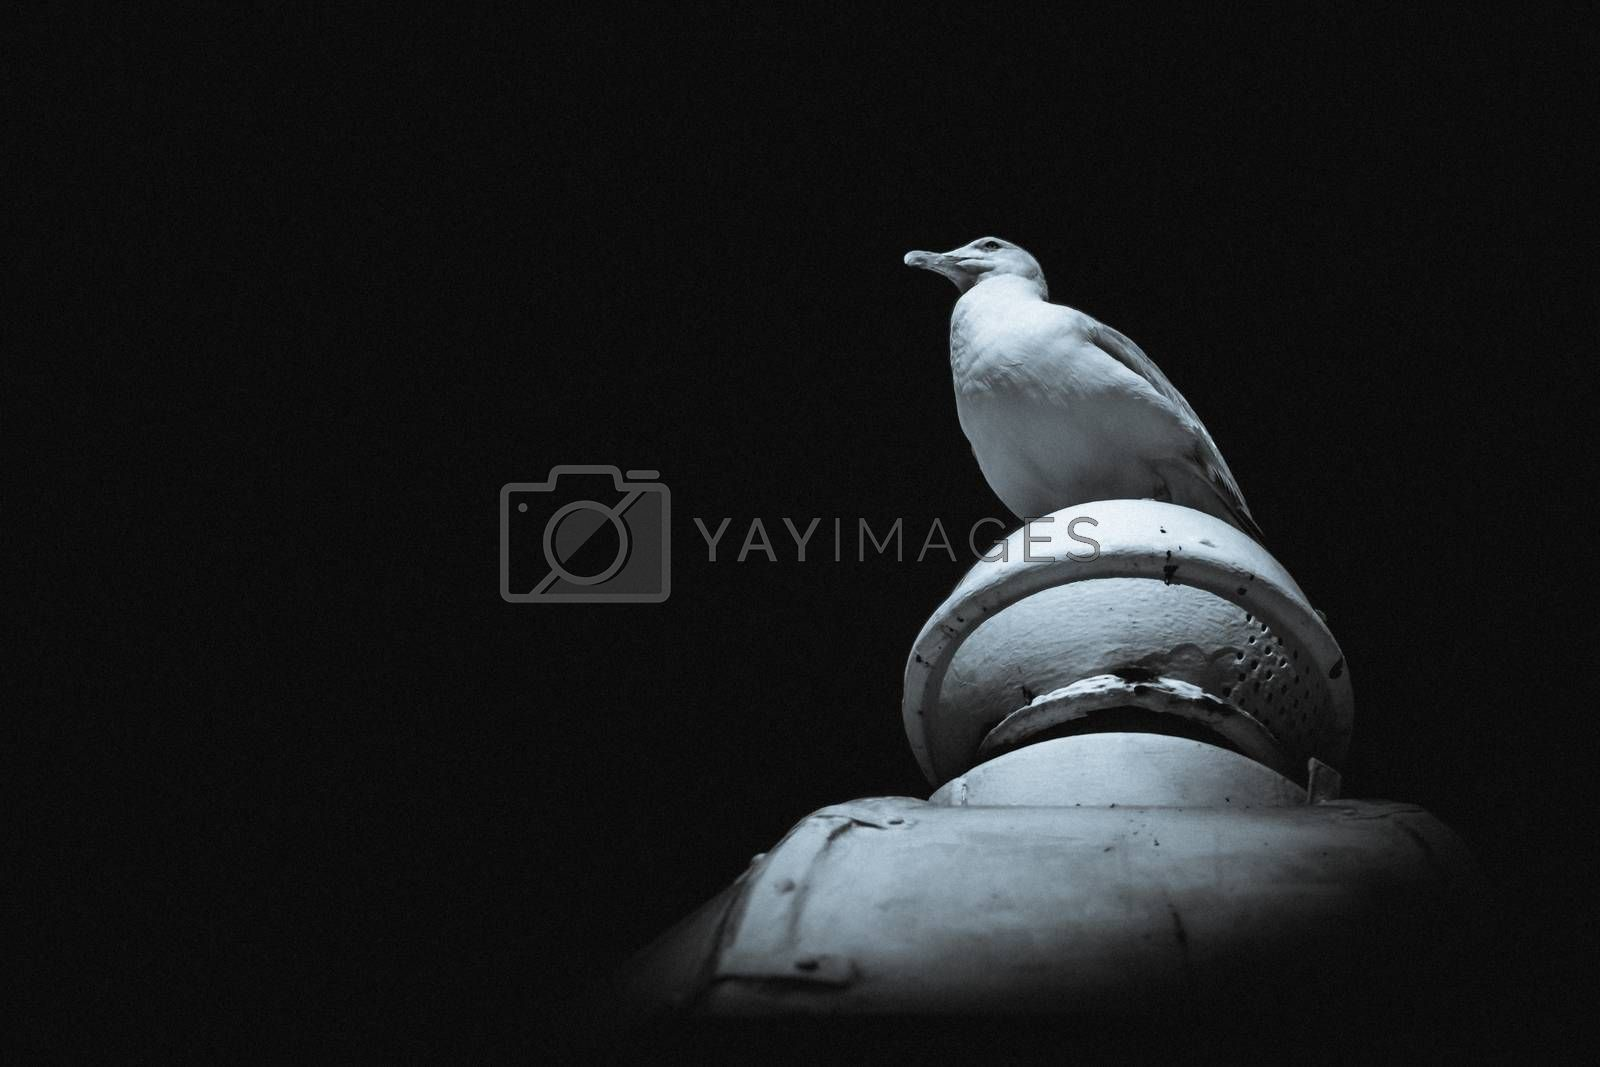 Seagull sitting on the top of a building, black and white portrait